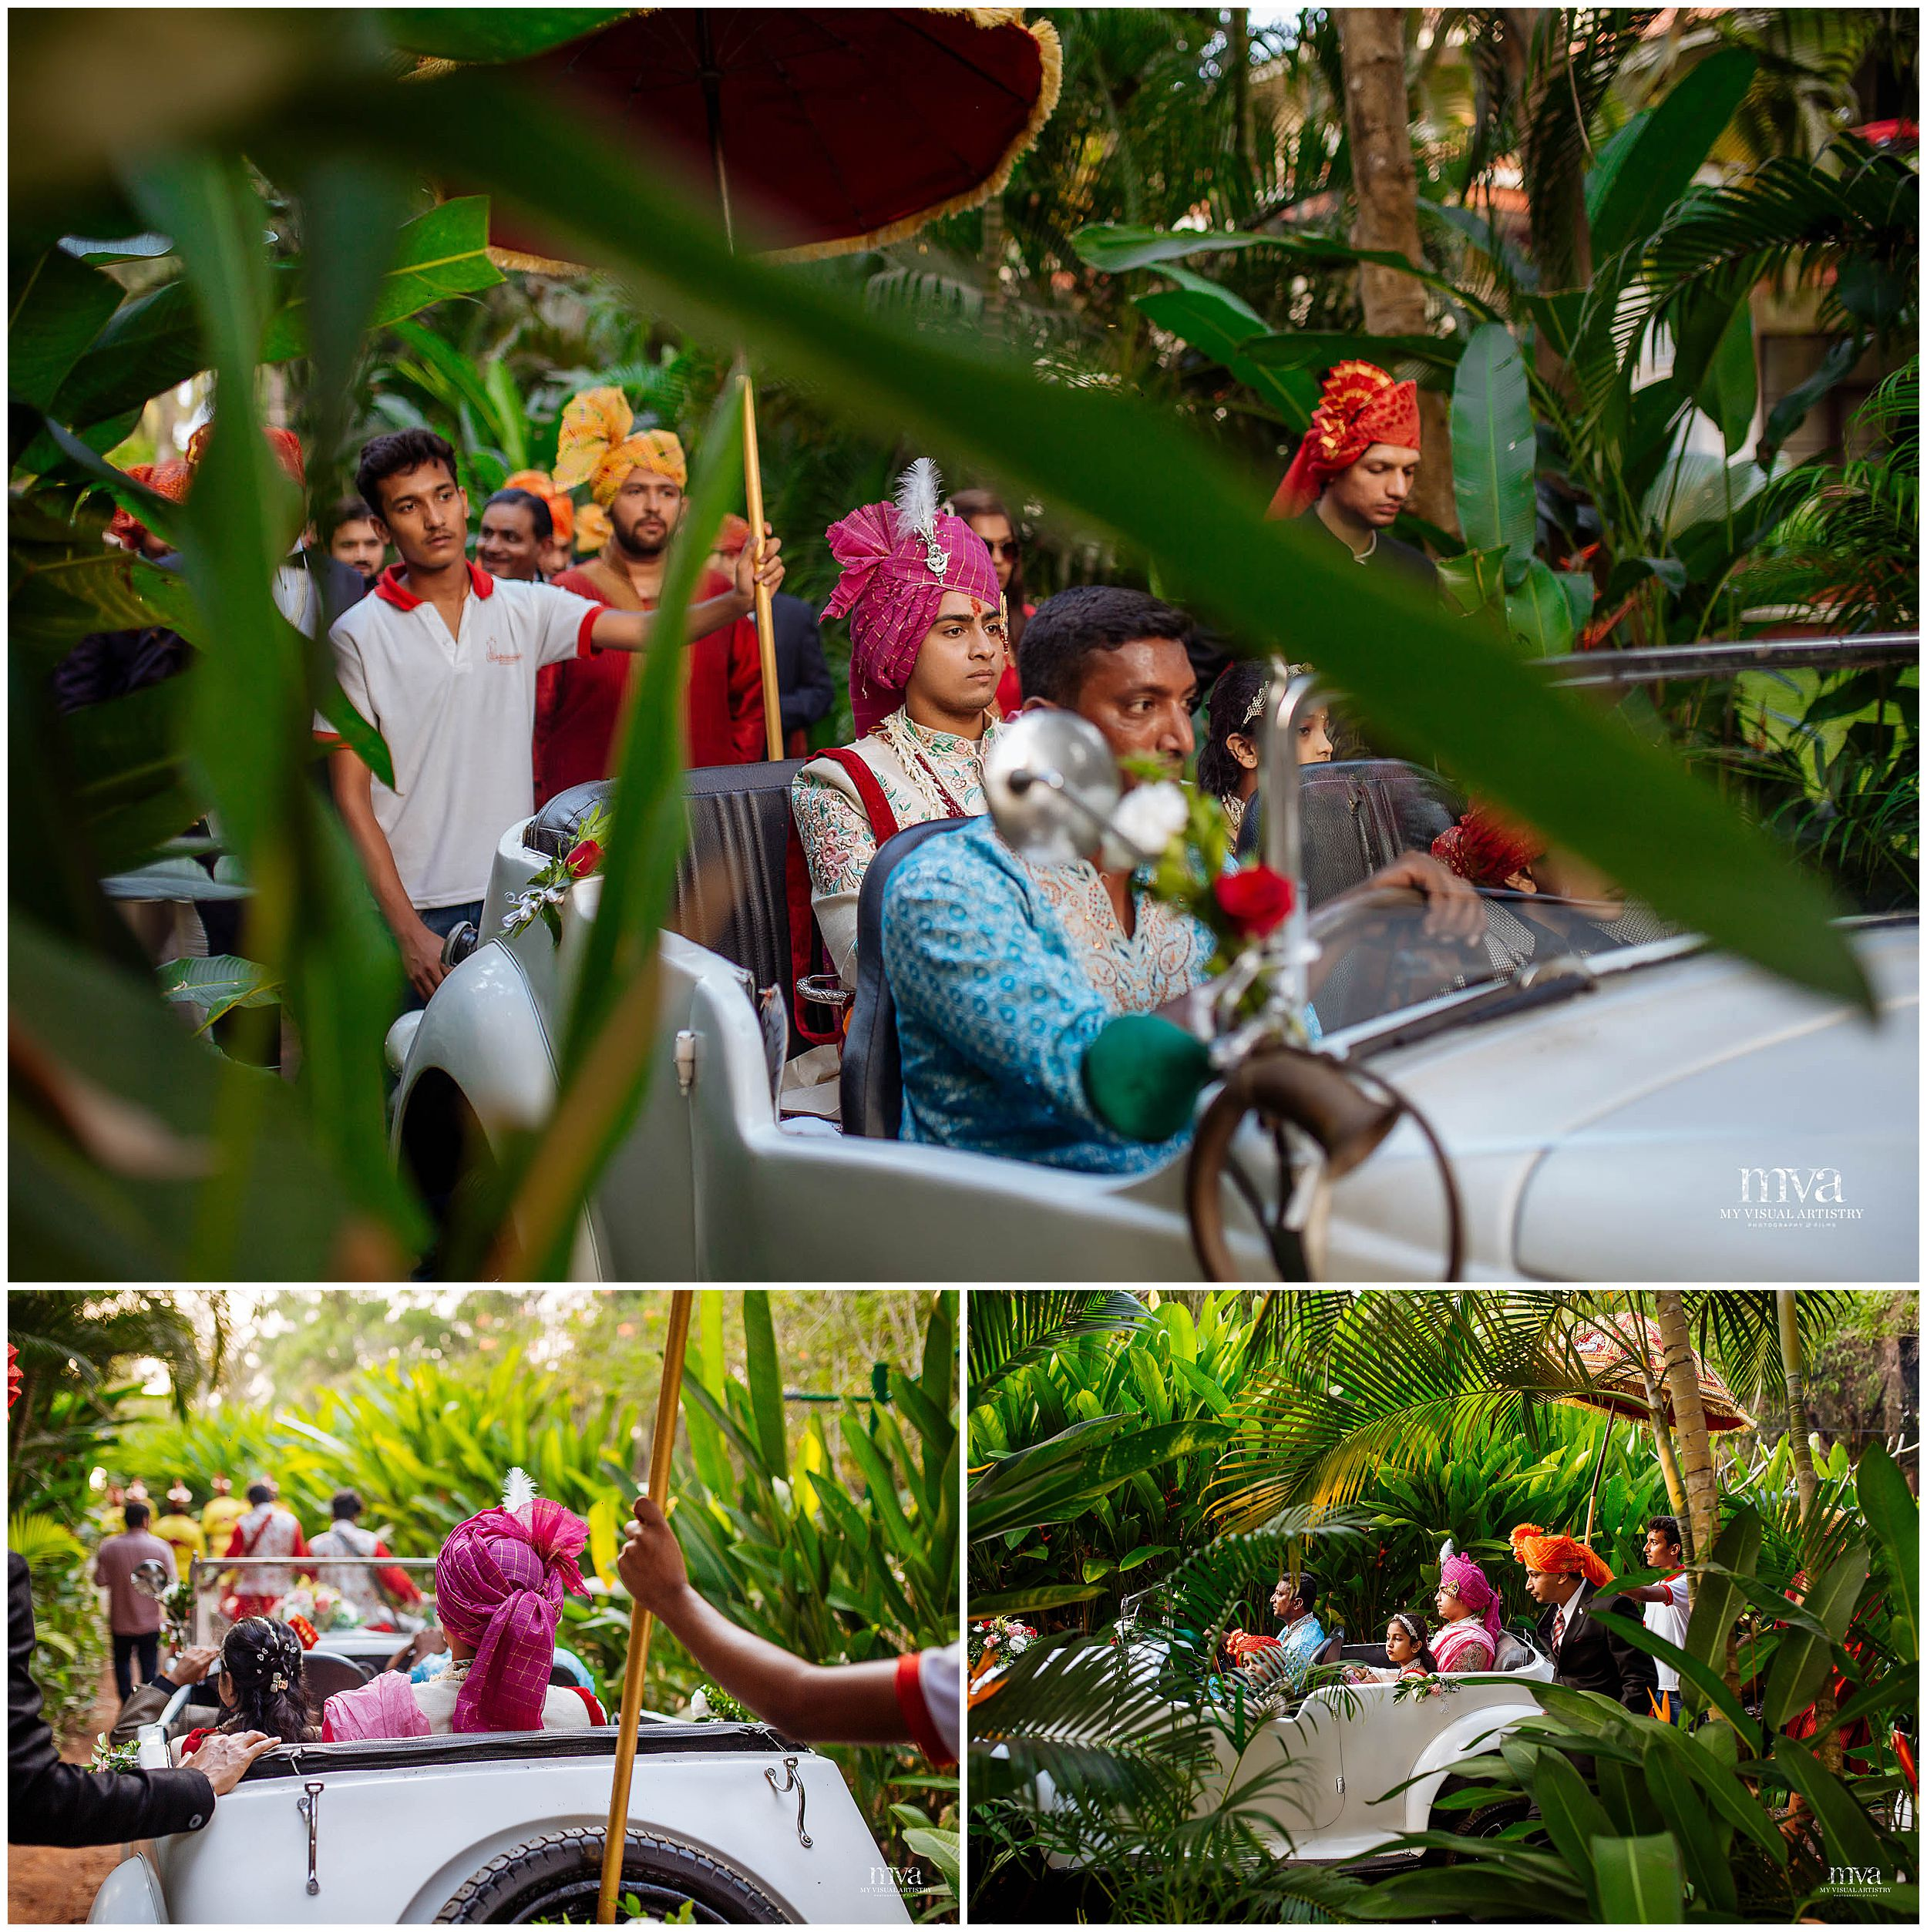 ROHIT_SANIYA_MYVISUALARTISTRY__WEDDING_PHOTOGRAPHER_GOA_DESTINATION_CAREVELA_RESORT_0014.jpg